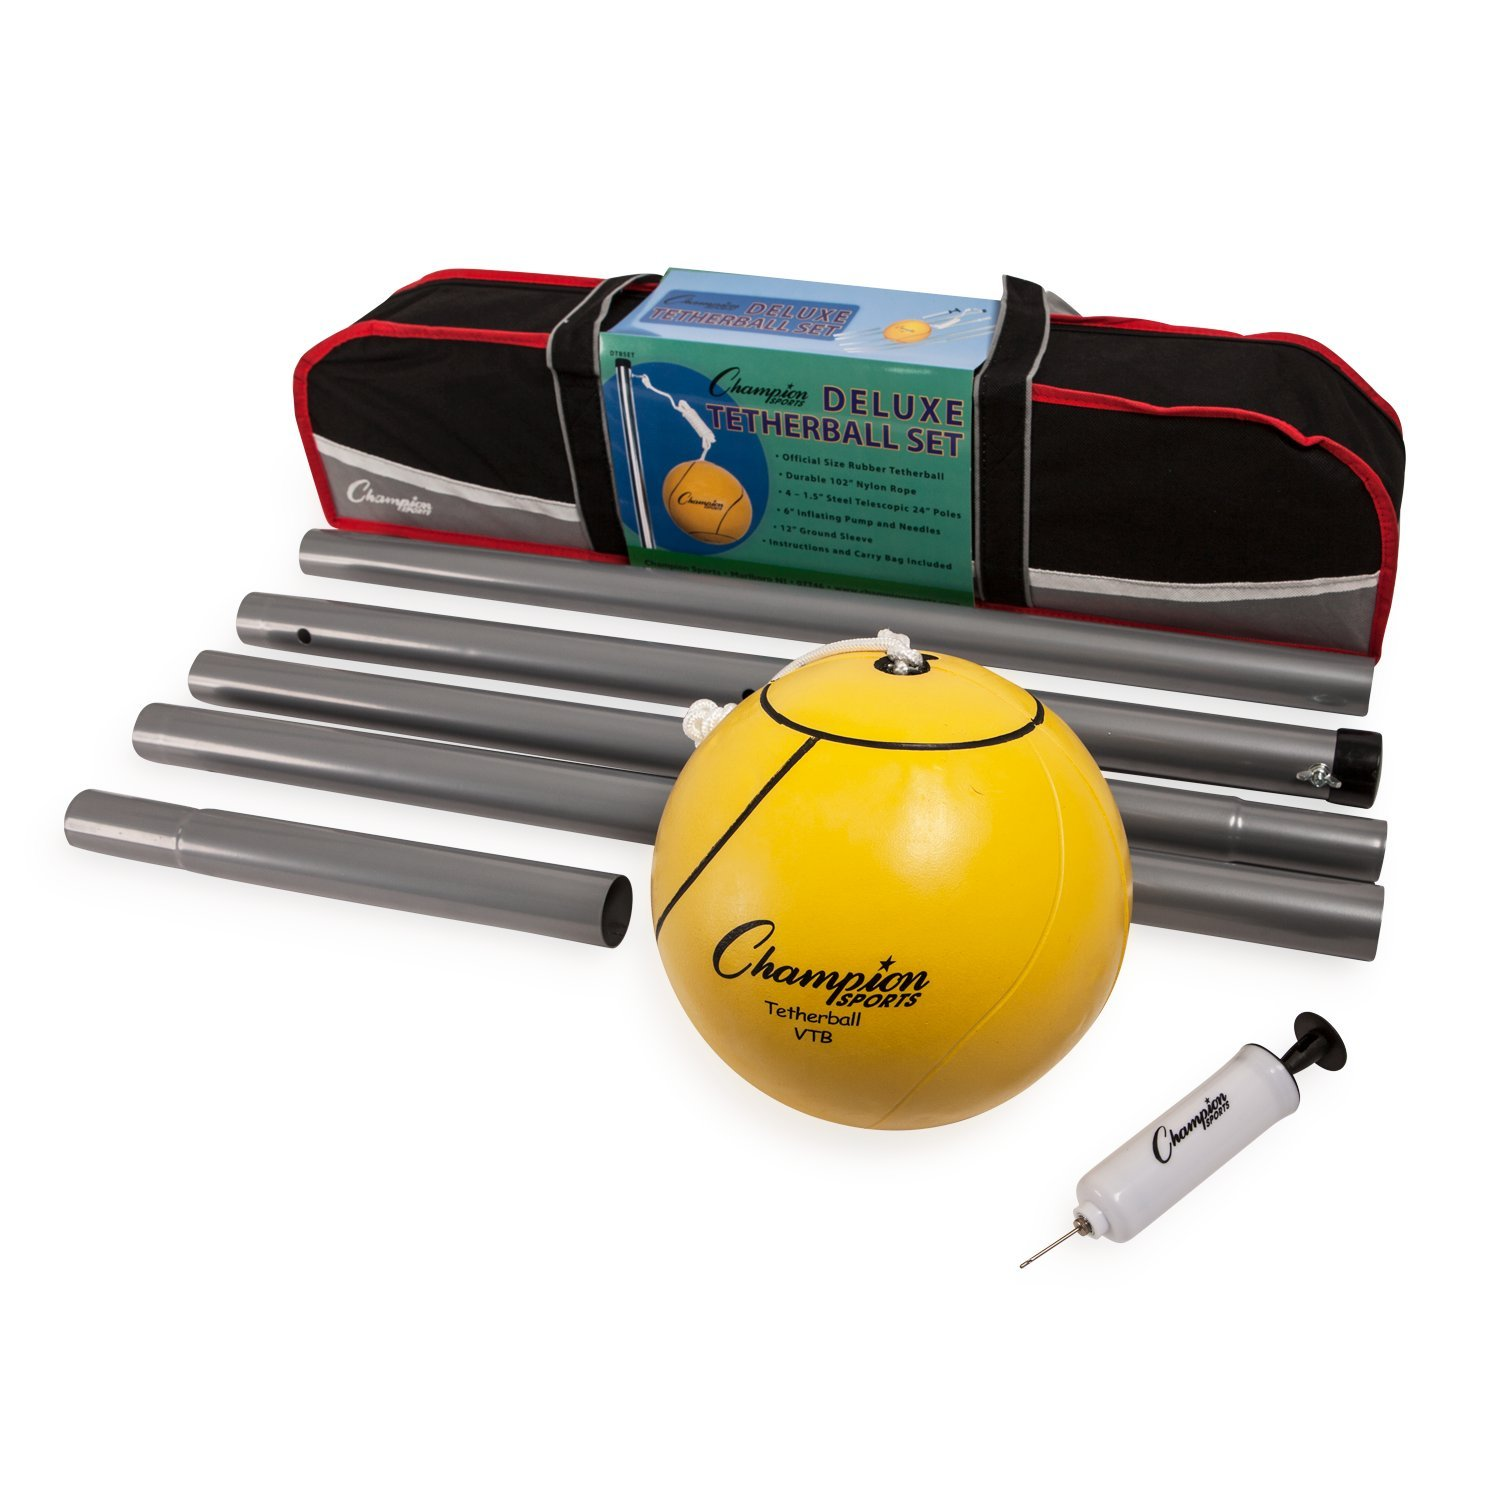 Champion Sports Portable Tetherball Set: Classic Backyard Lawn Beach and Pool Party Game Includes Soft Ball Nylon Rope & Durable Telescopic Pole With Free Air Pump